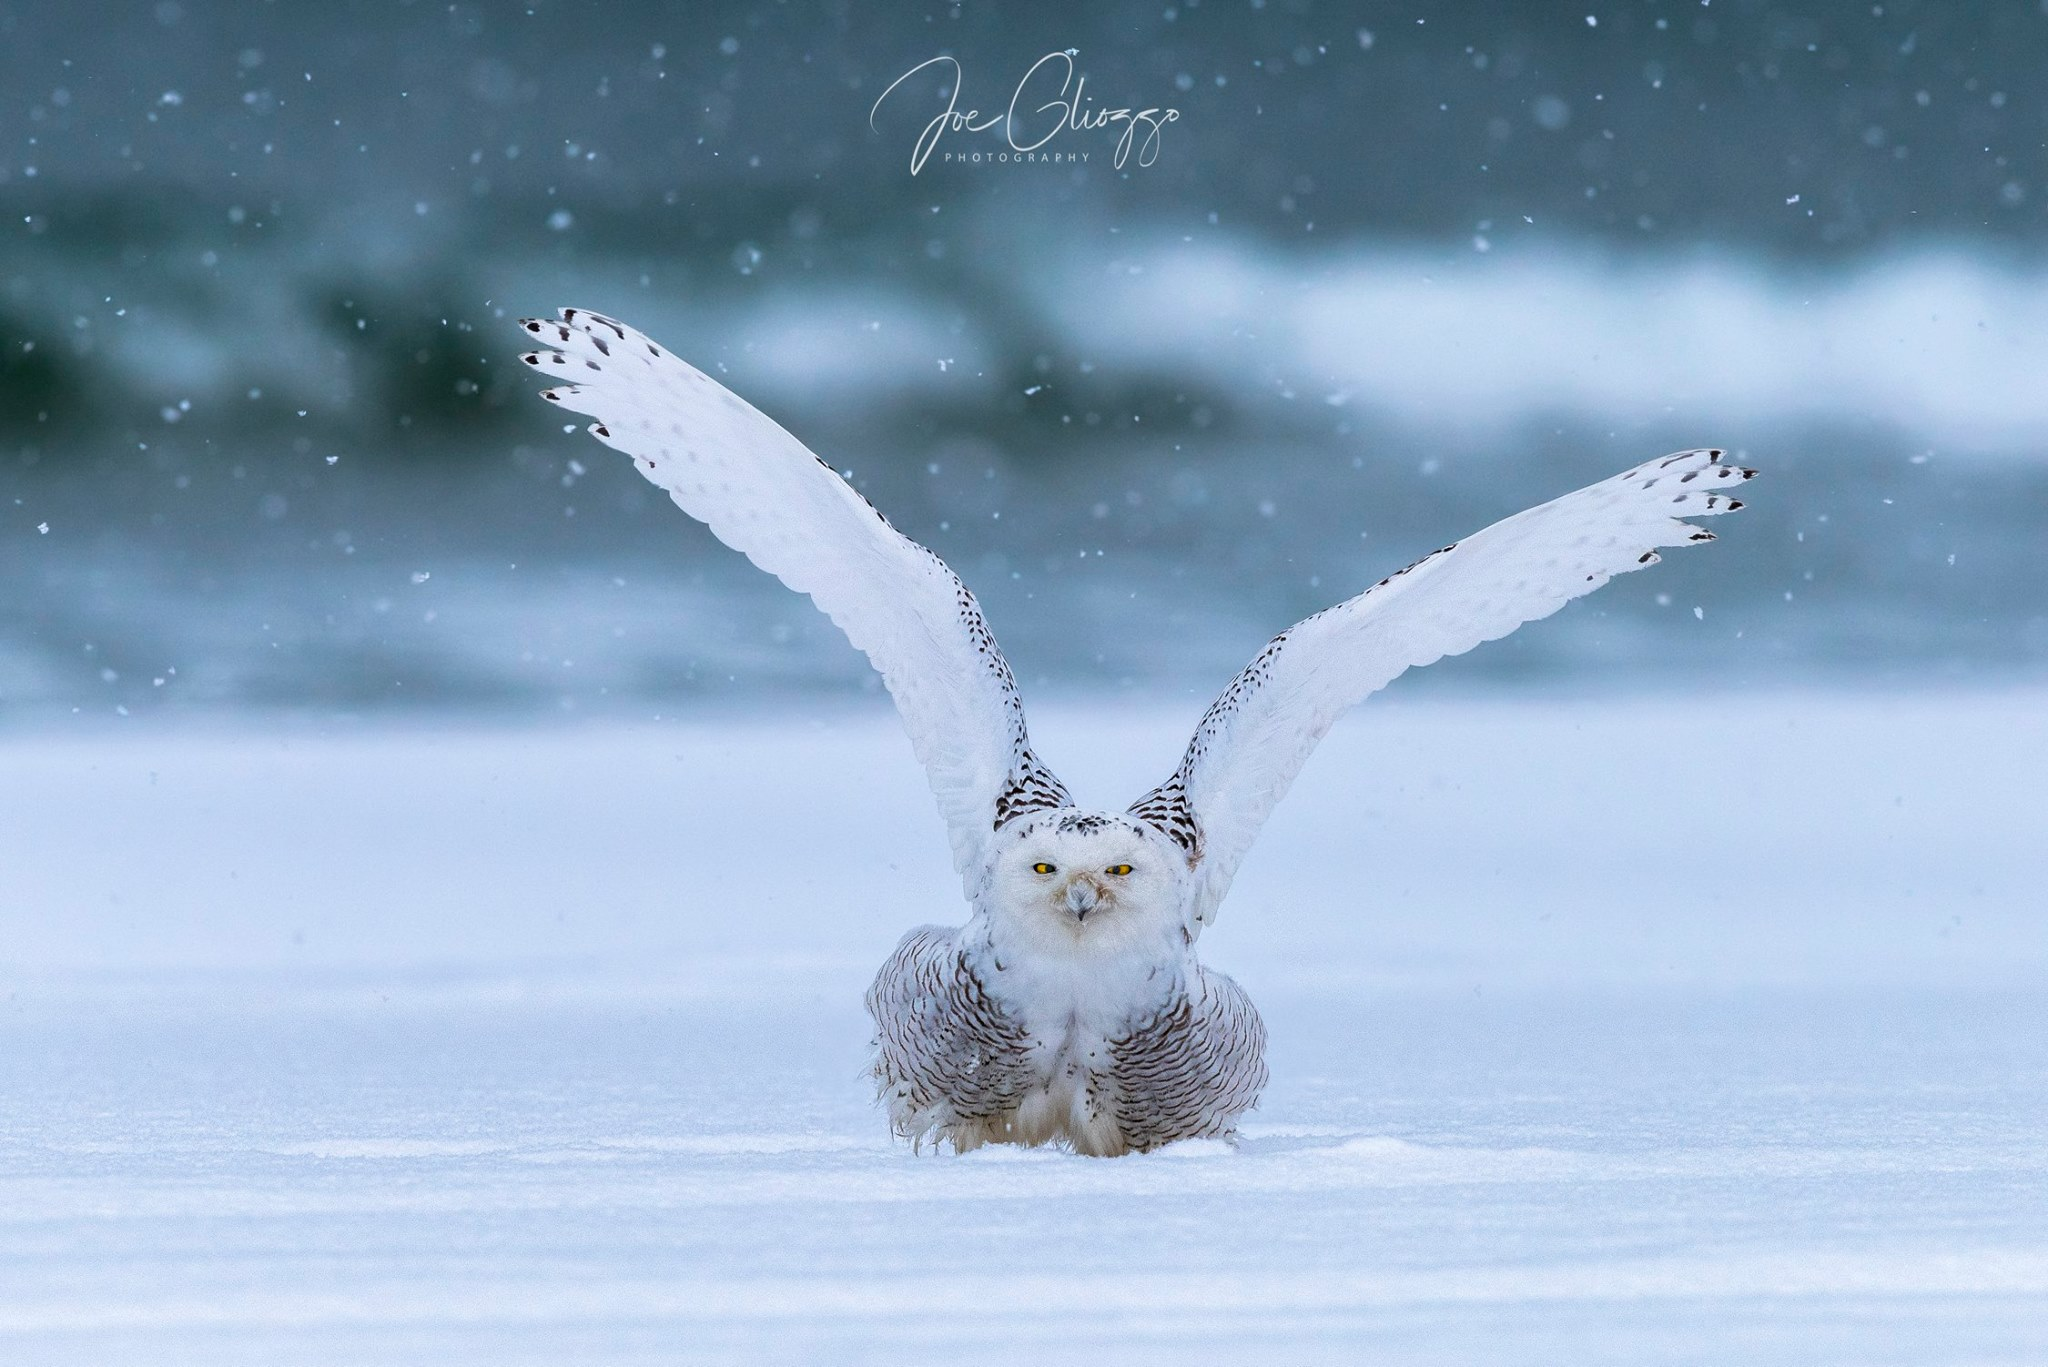 WELCOME TO 2018! JOE GLIOZZO CAPTURED THE MOMENT WITH THIS SNOWY OWL DURING THE YEAR'S FIRST SNOW STORM AT THE NEW JERSEY SHORE.